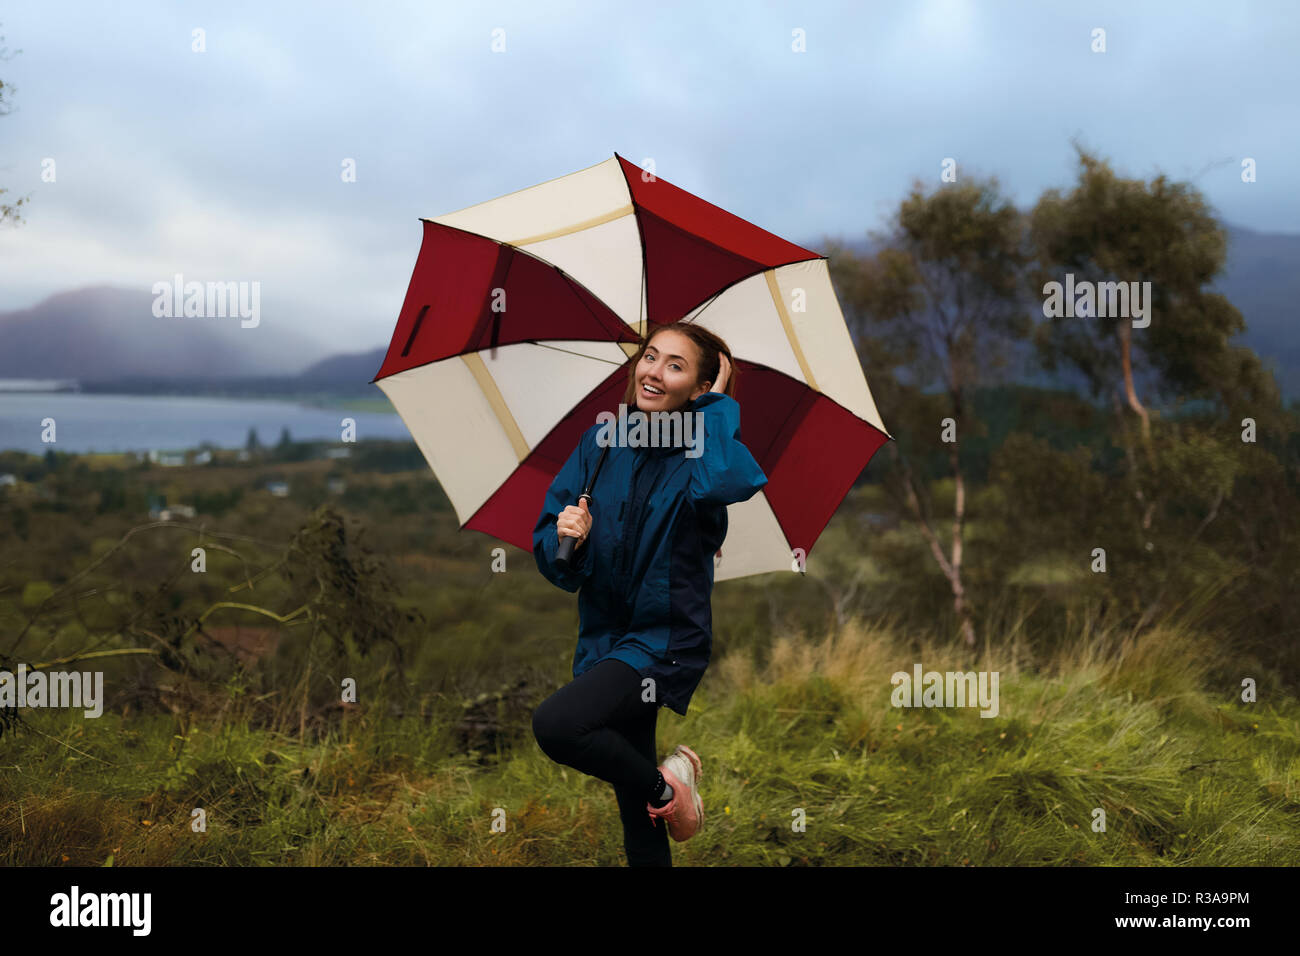 Smiling girl standing outdoor on the green grass, cold wet autumn weather. Woman holding big red and white umbrella. Mountains on the background, lake Stock Photo